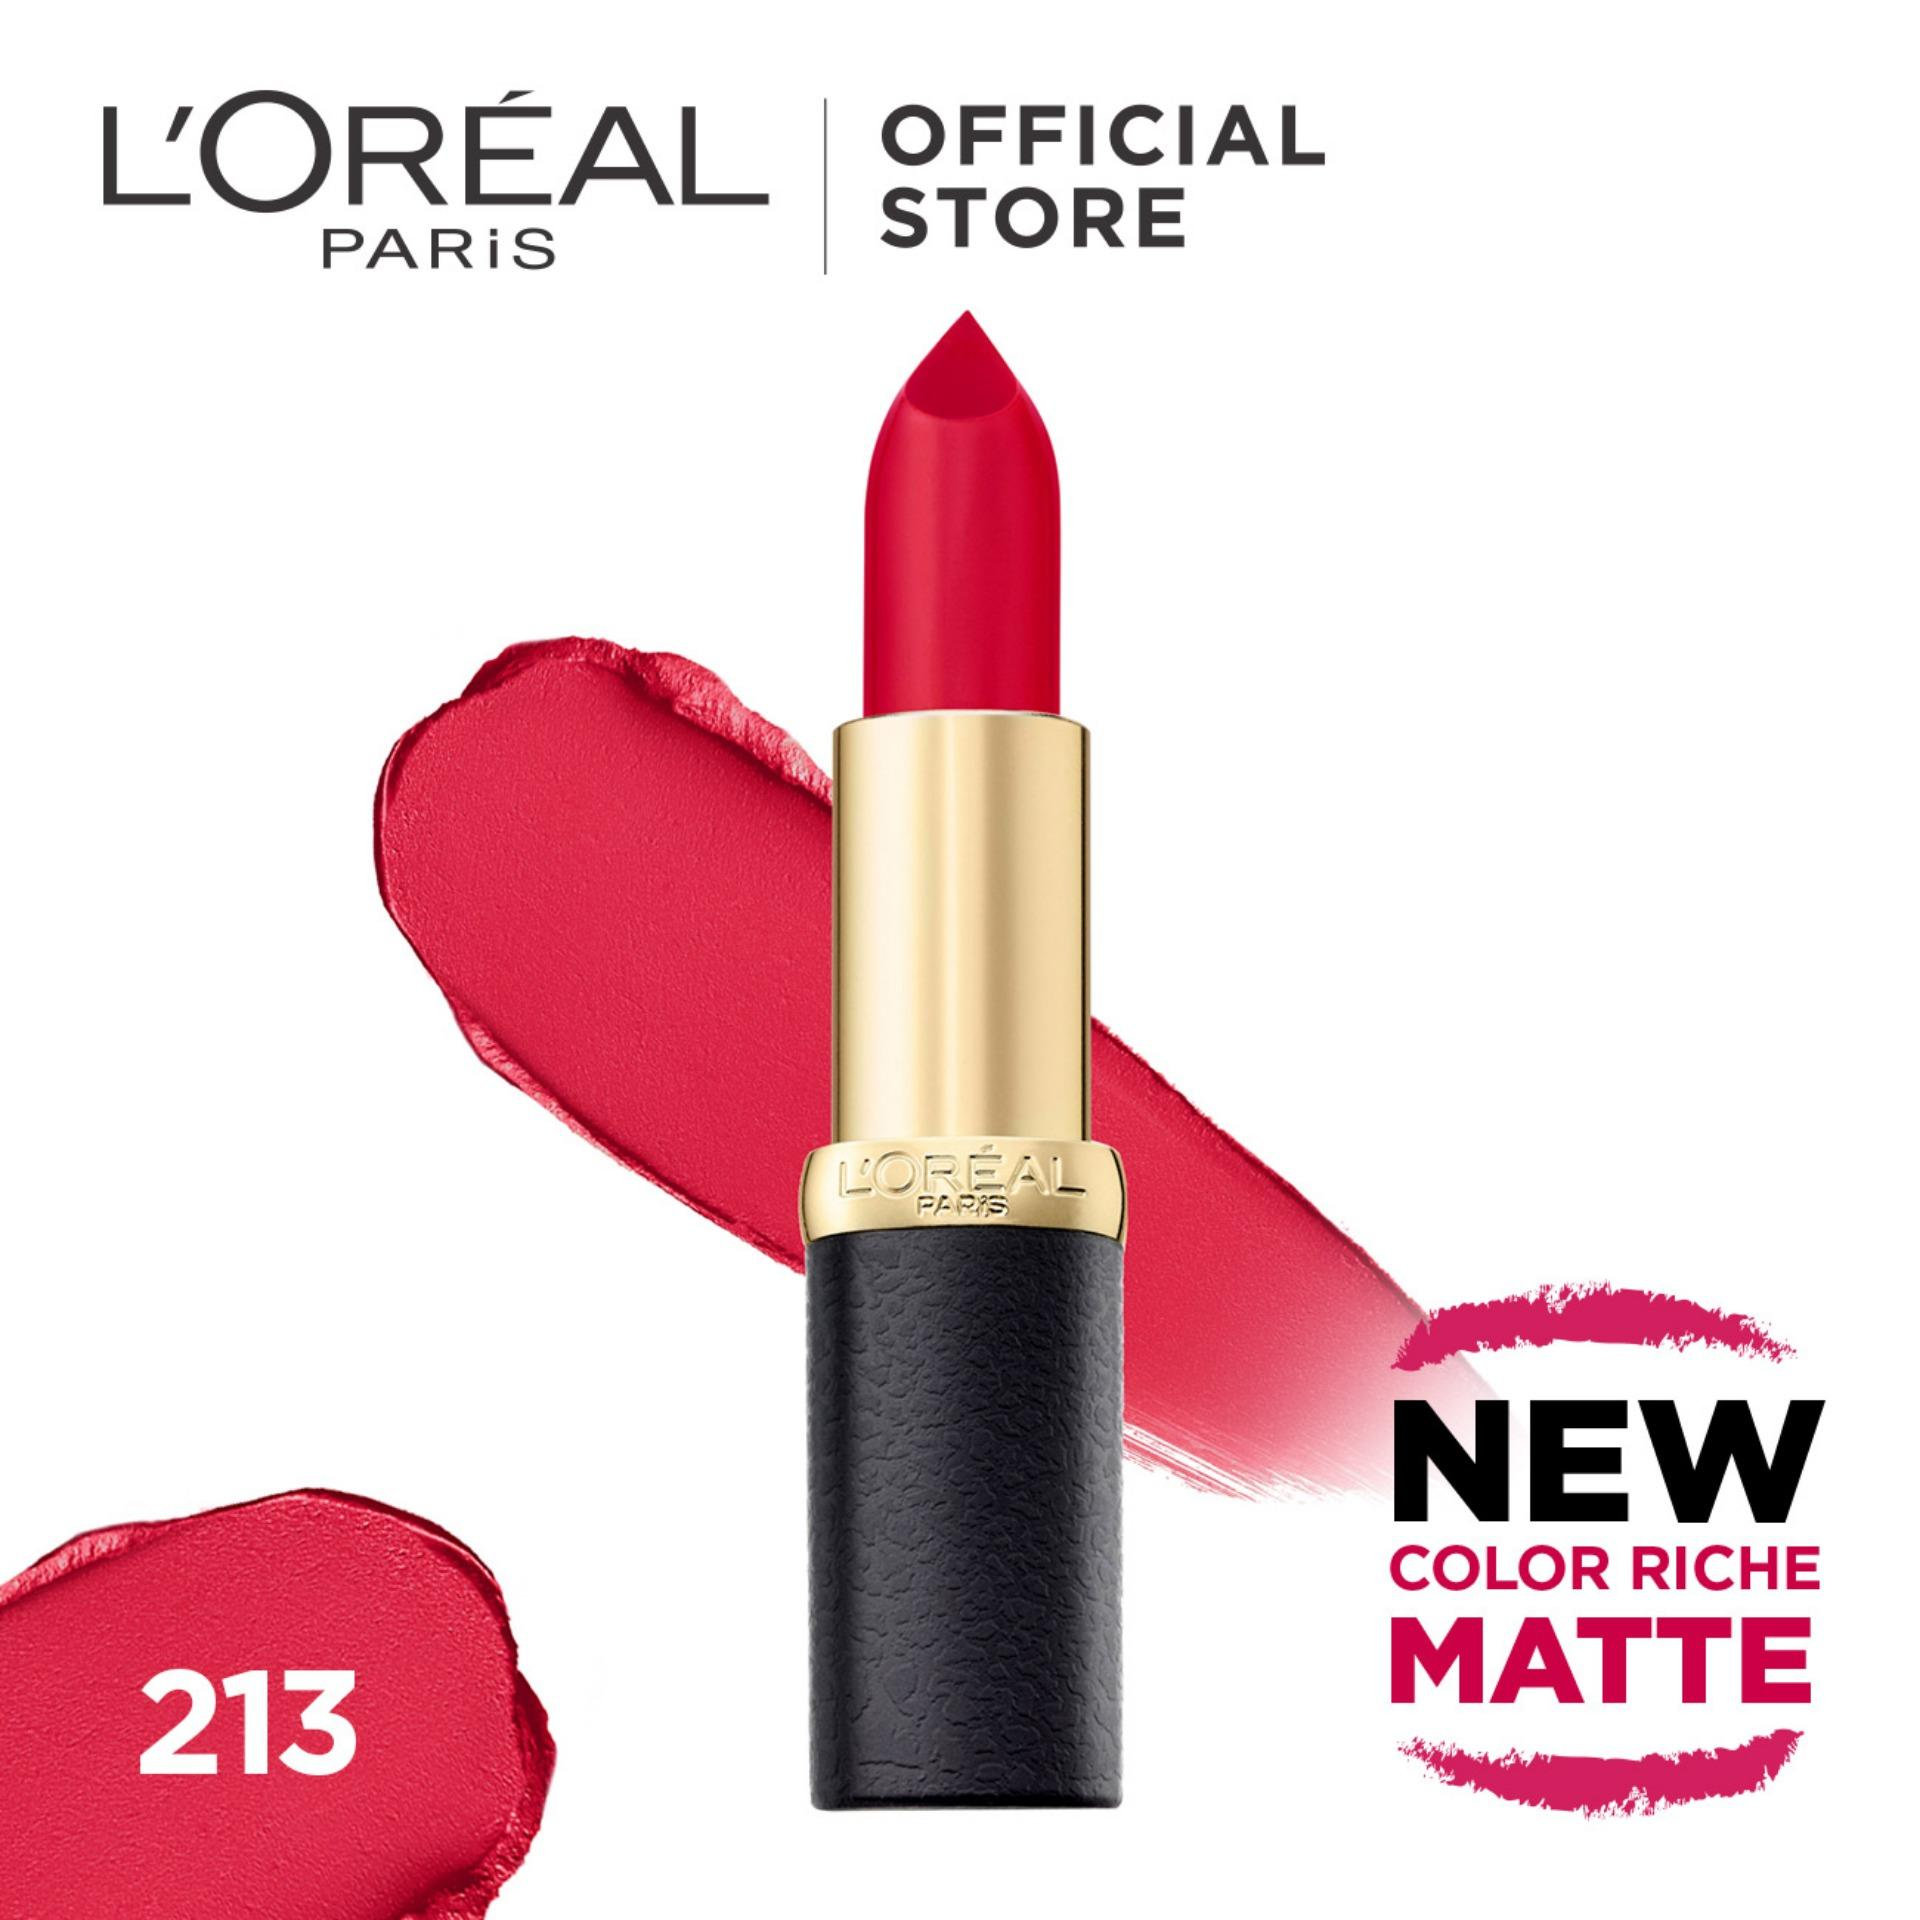 Price L Oreal Paris Color Riche Matte Lipsticks Online Singapore